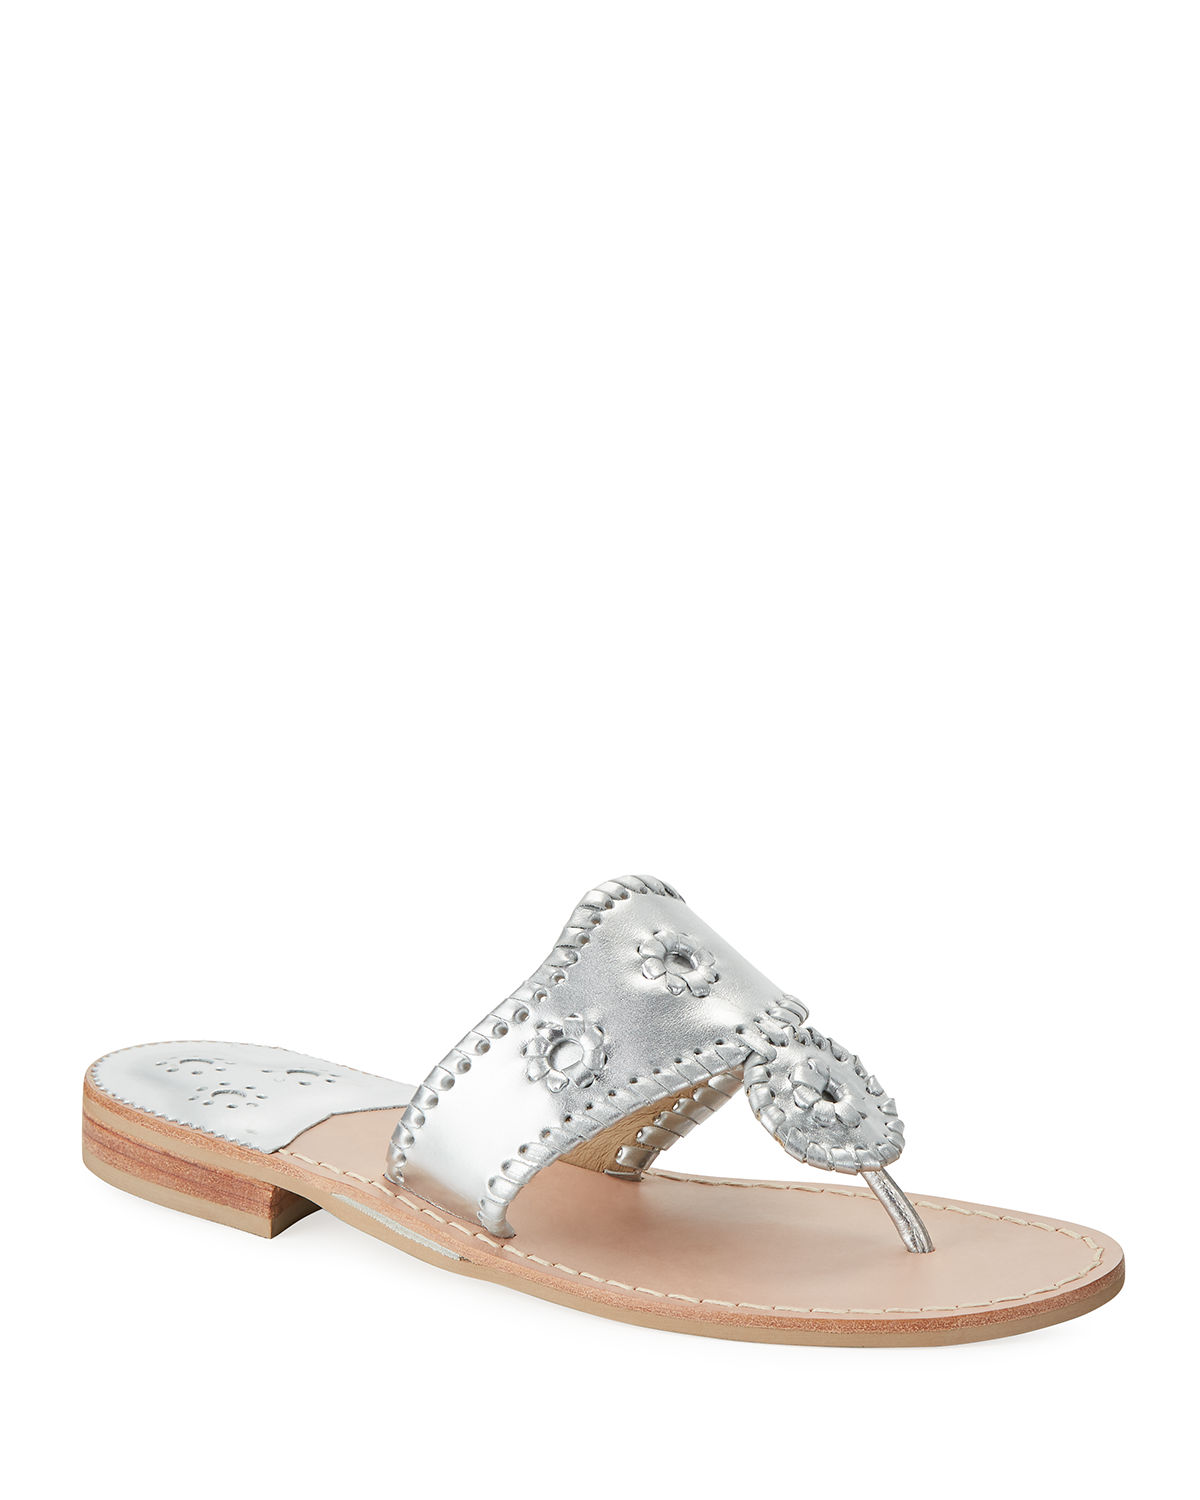 Whipstitched Leather Slide Sandals